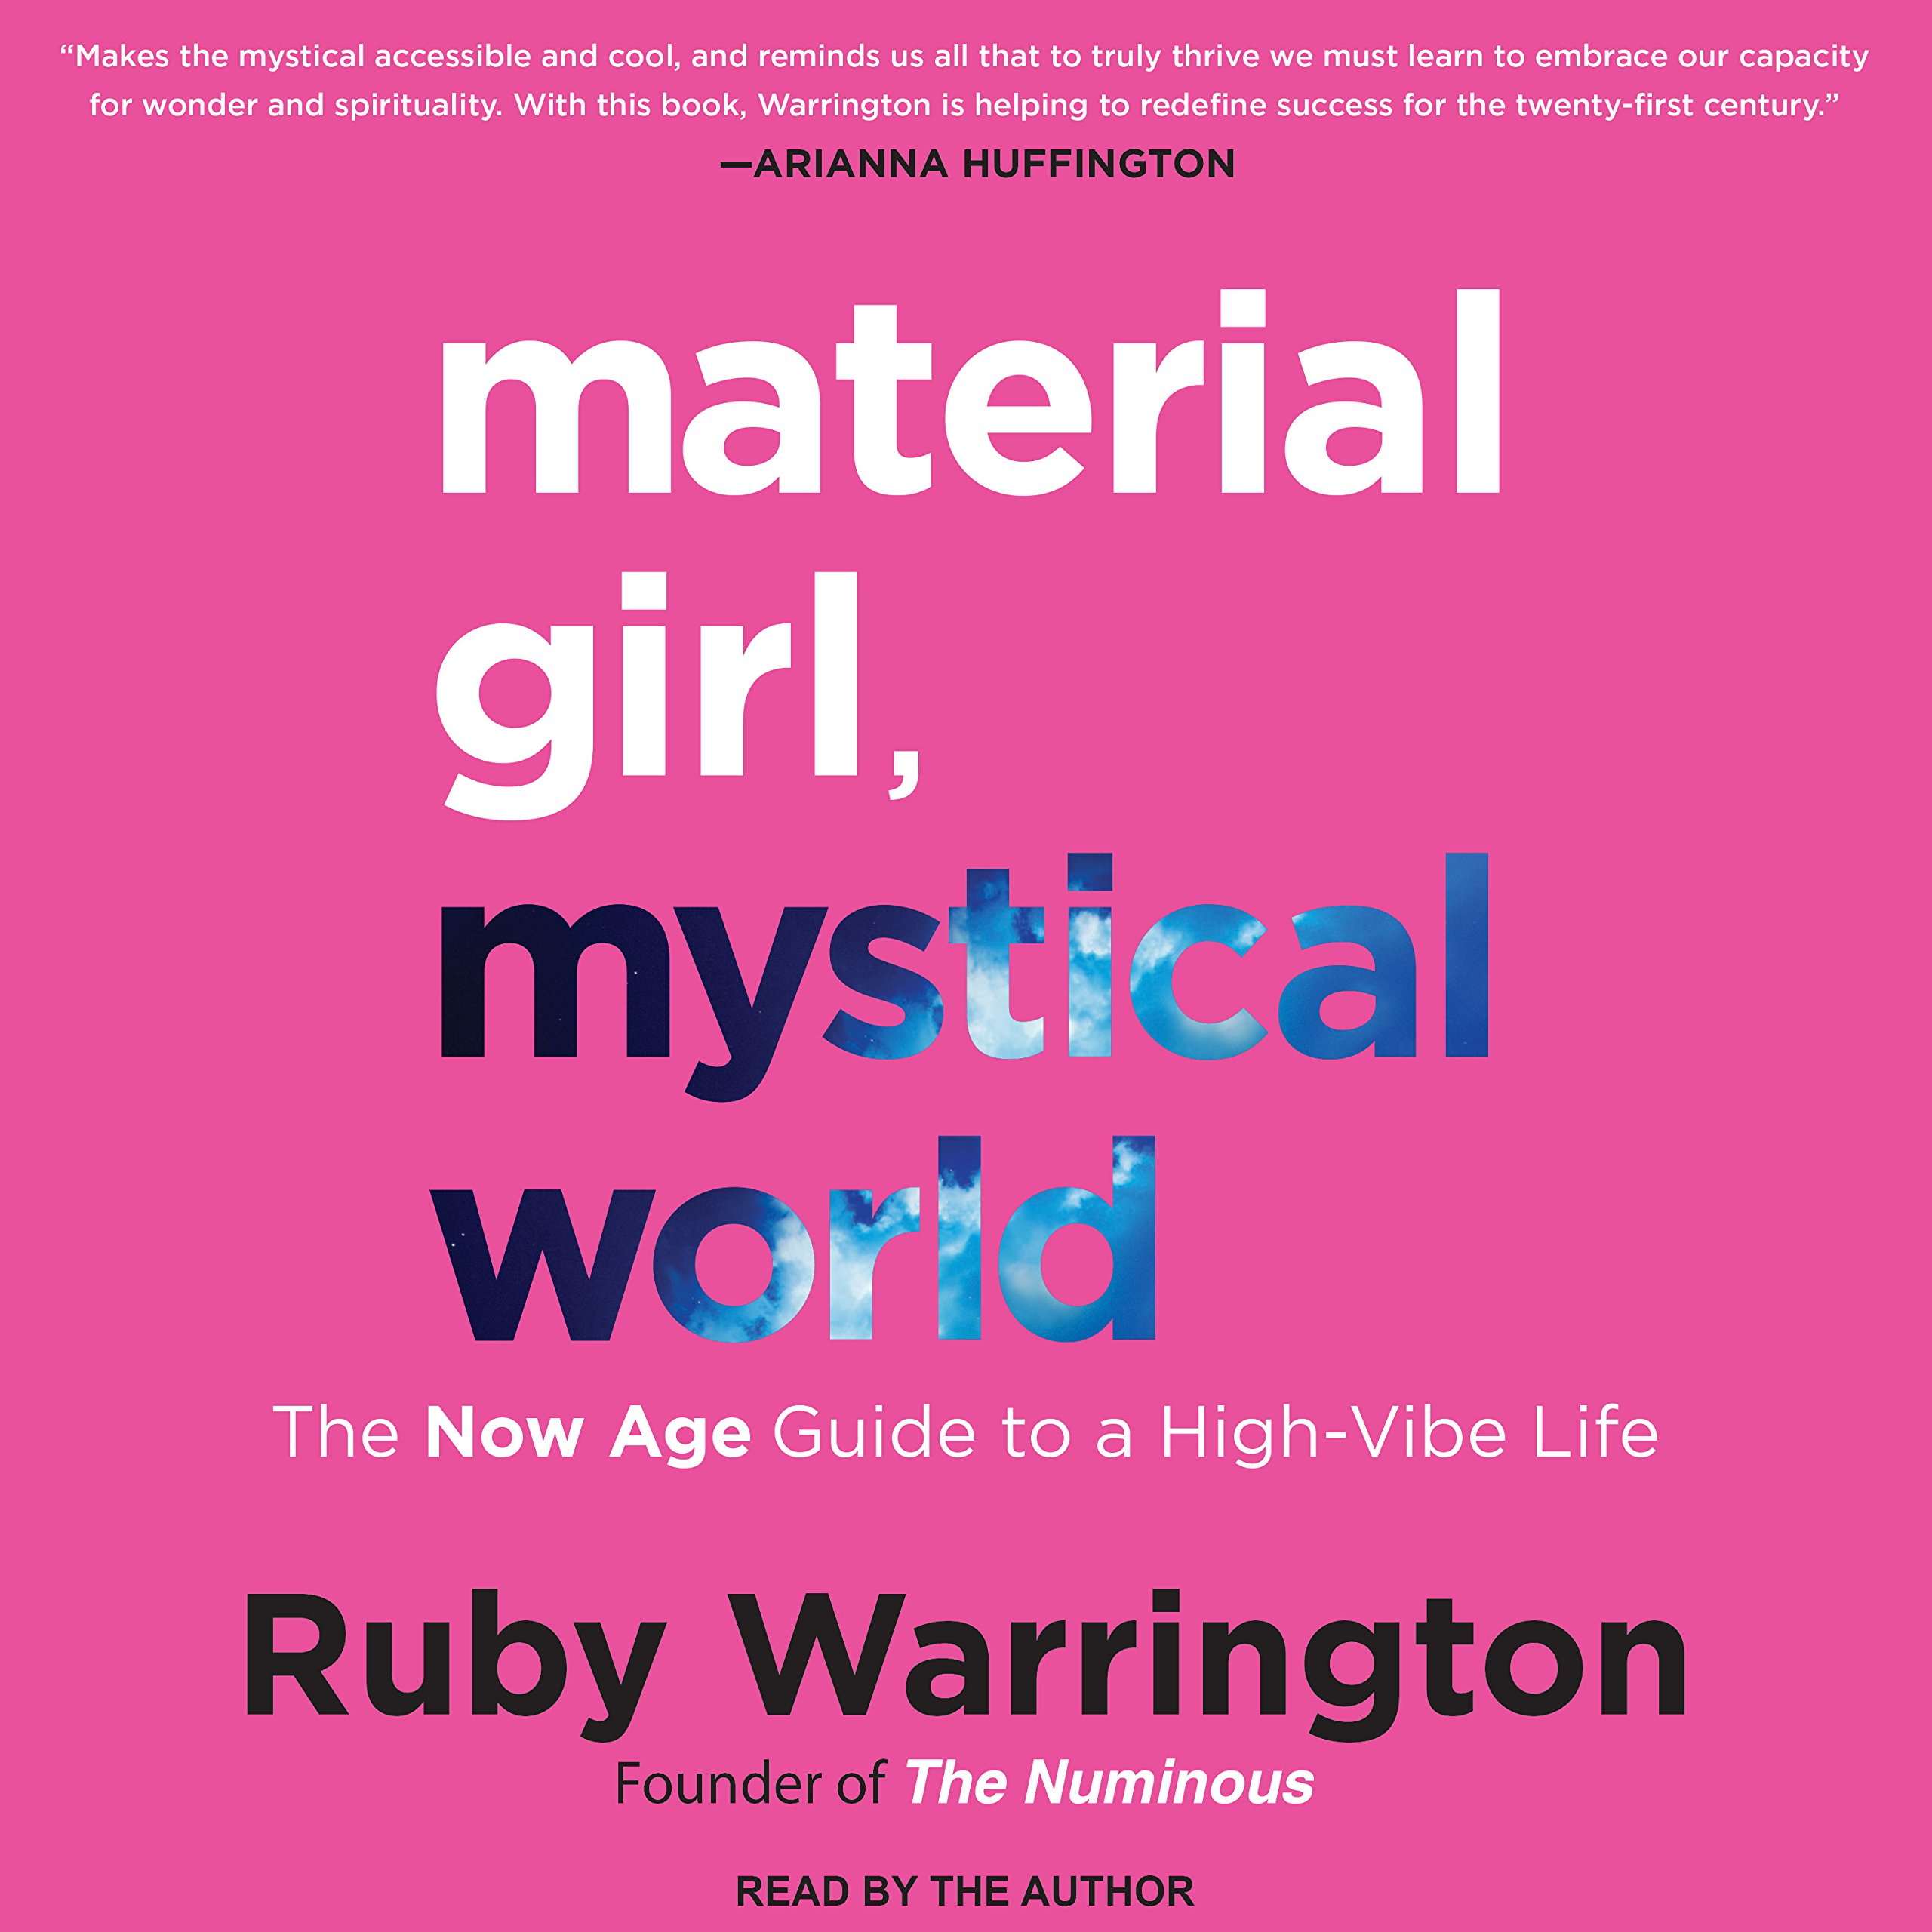 Material girl mystical world the now age guide to a high vibe material girl mystical world the now age guide to a high vibe life amazon ruby warrington books aiddatafo Choice Image